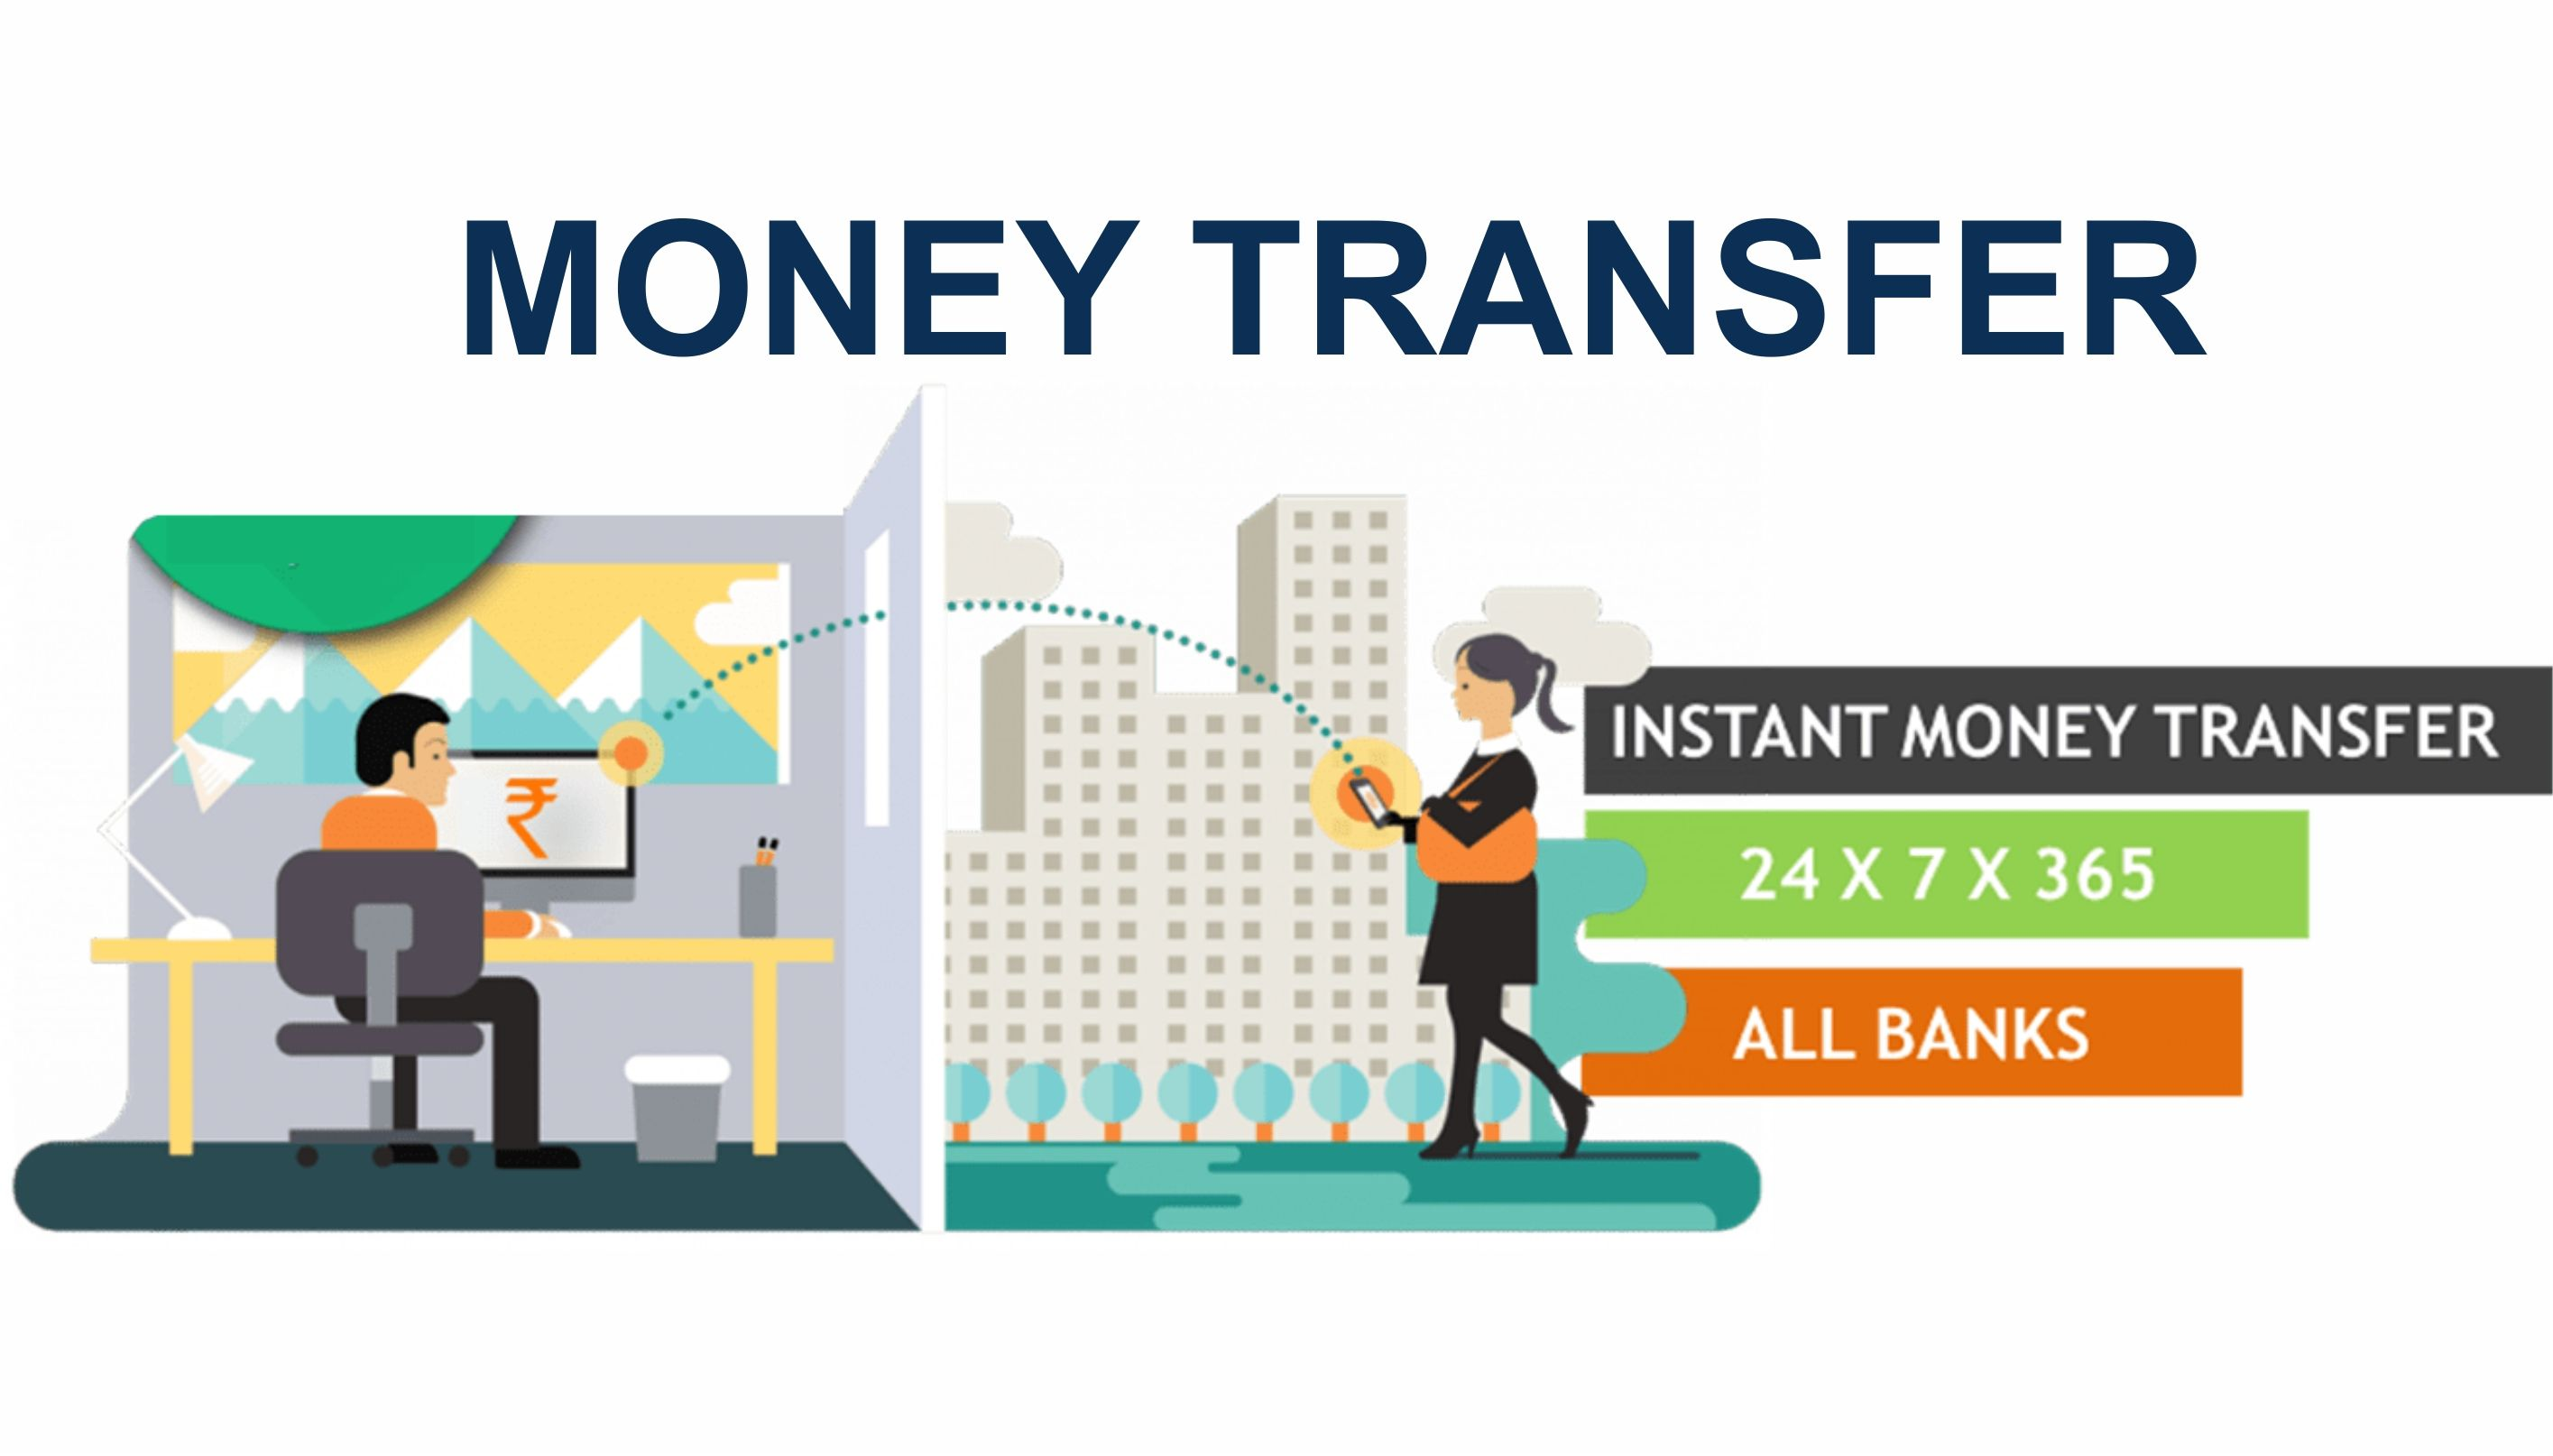 Instant Money Transfer to All Banks can be done with Lepay